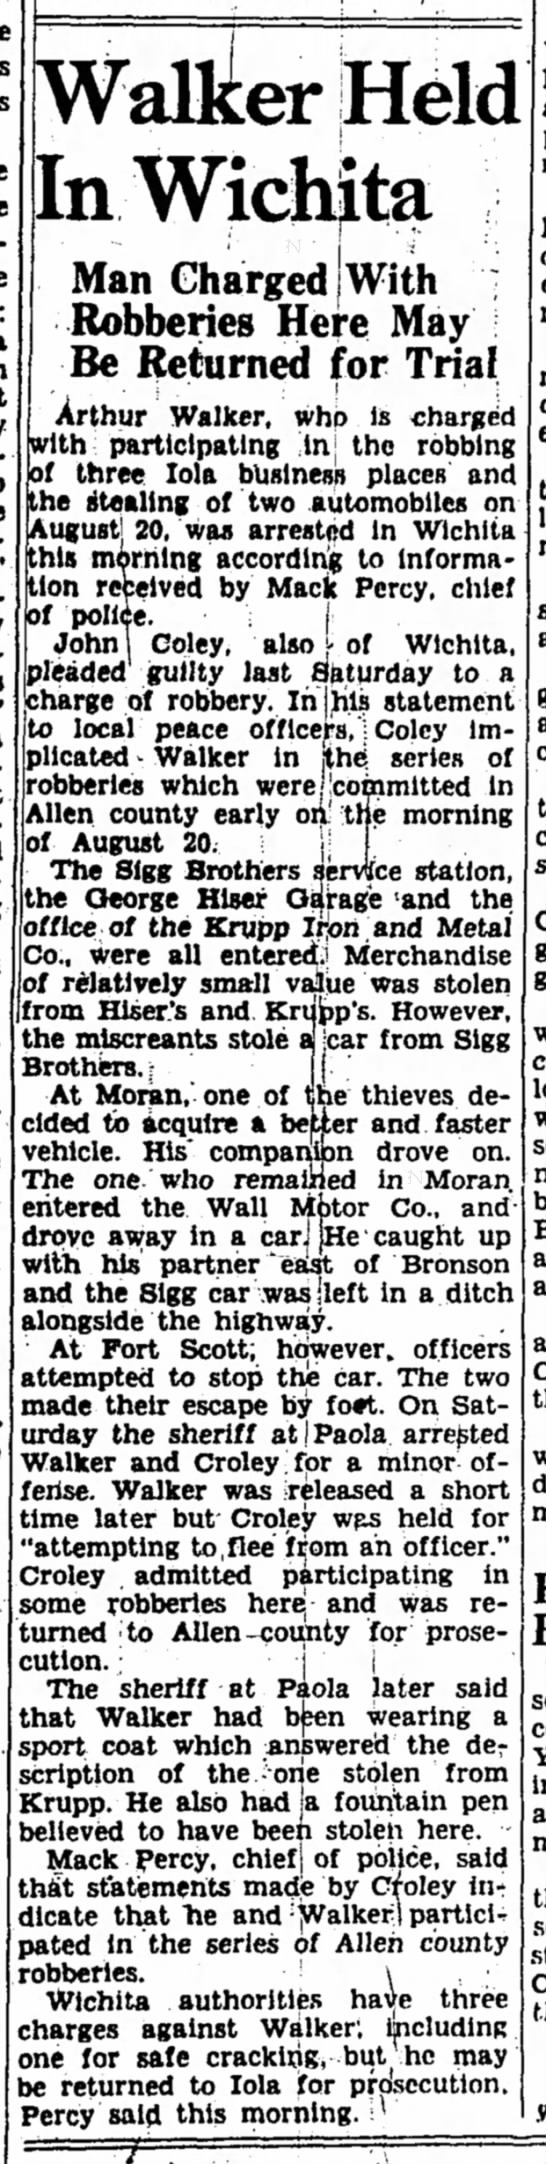 Sigg Brothers Service Station - Stolen Car -